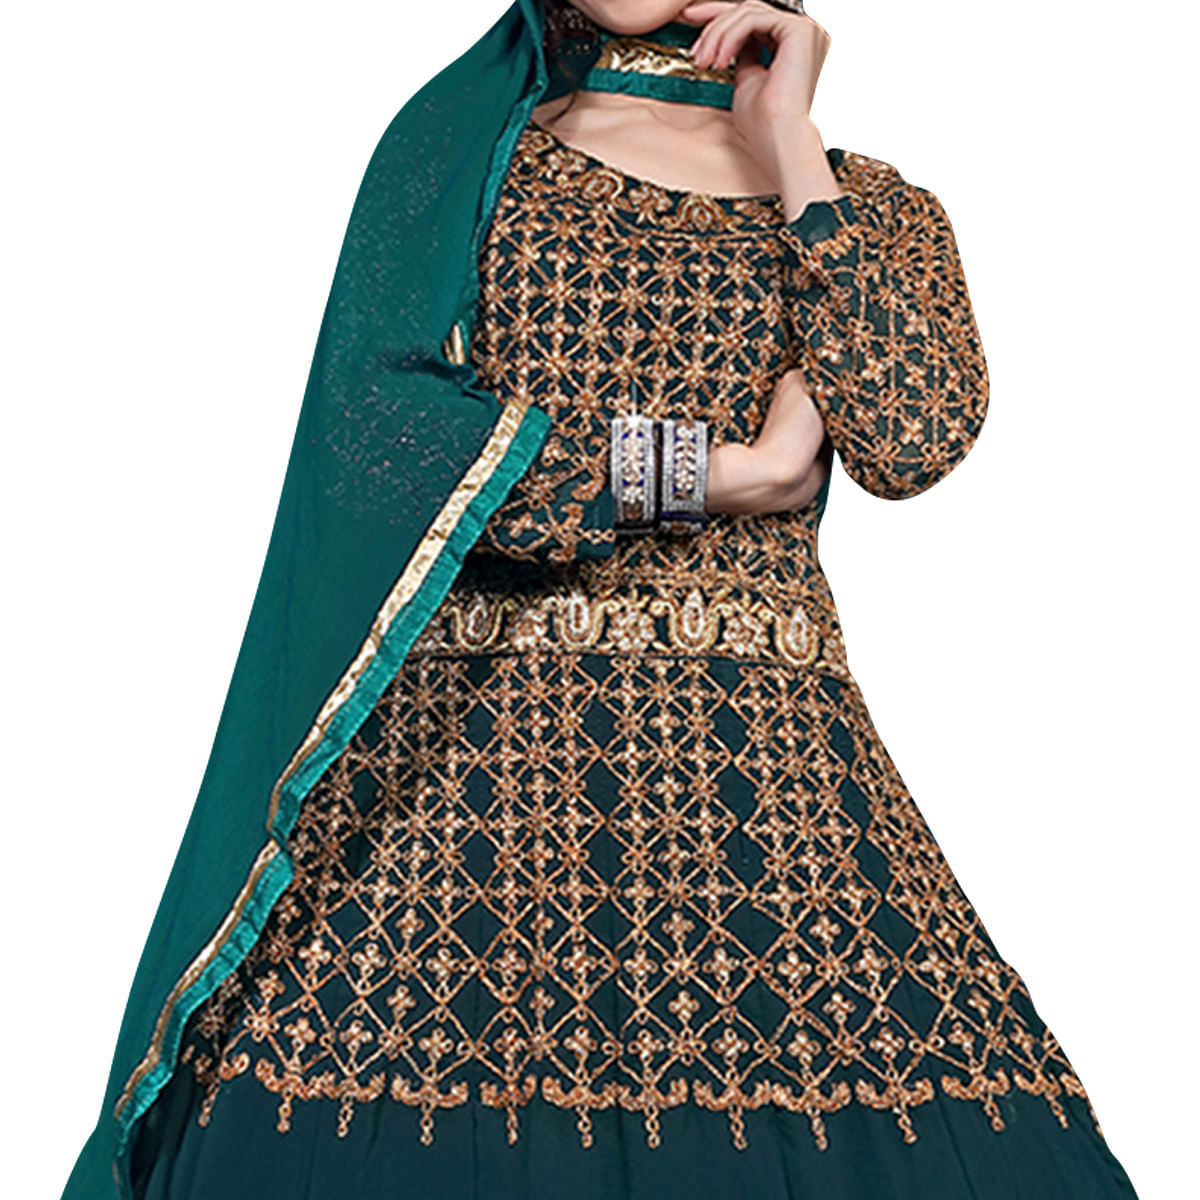 Mesmerising Rama Green Colored Designer Heavy Embroidered Georgette Anarkali Suit